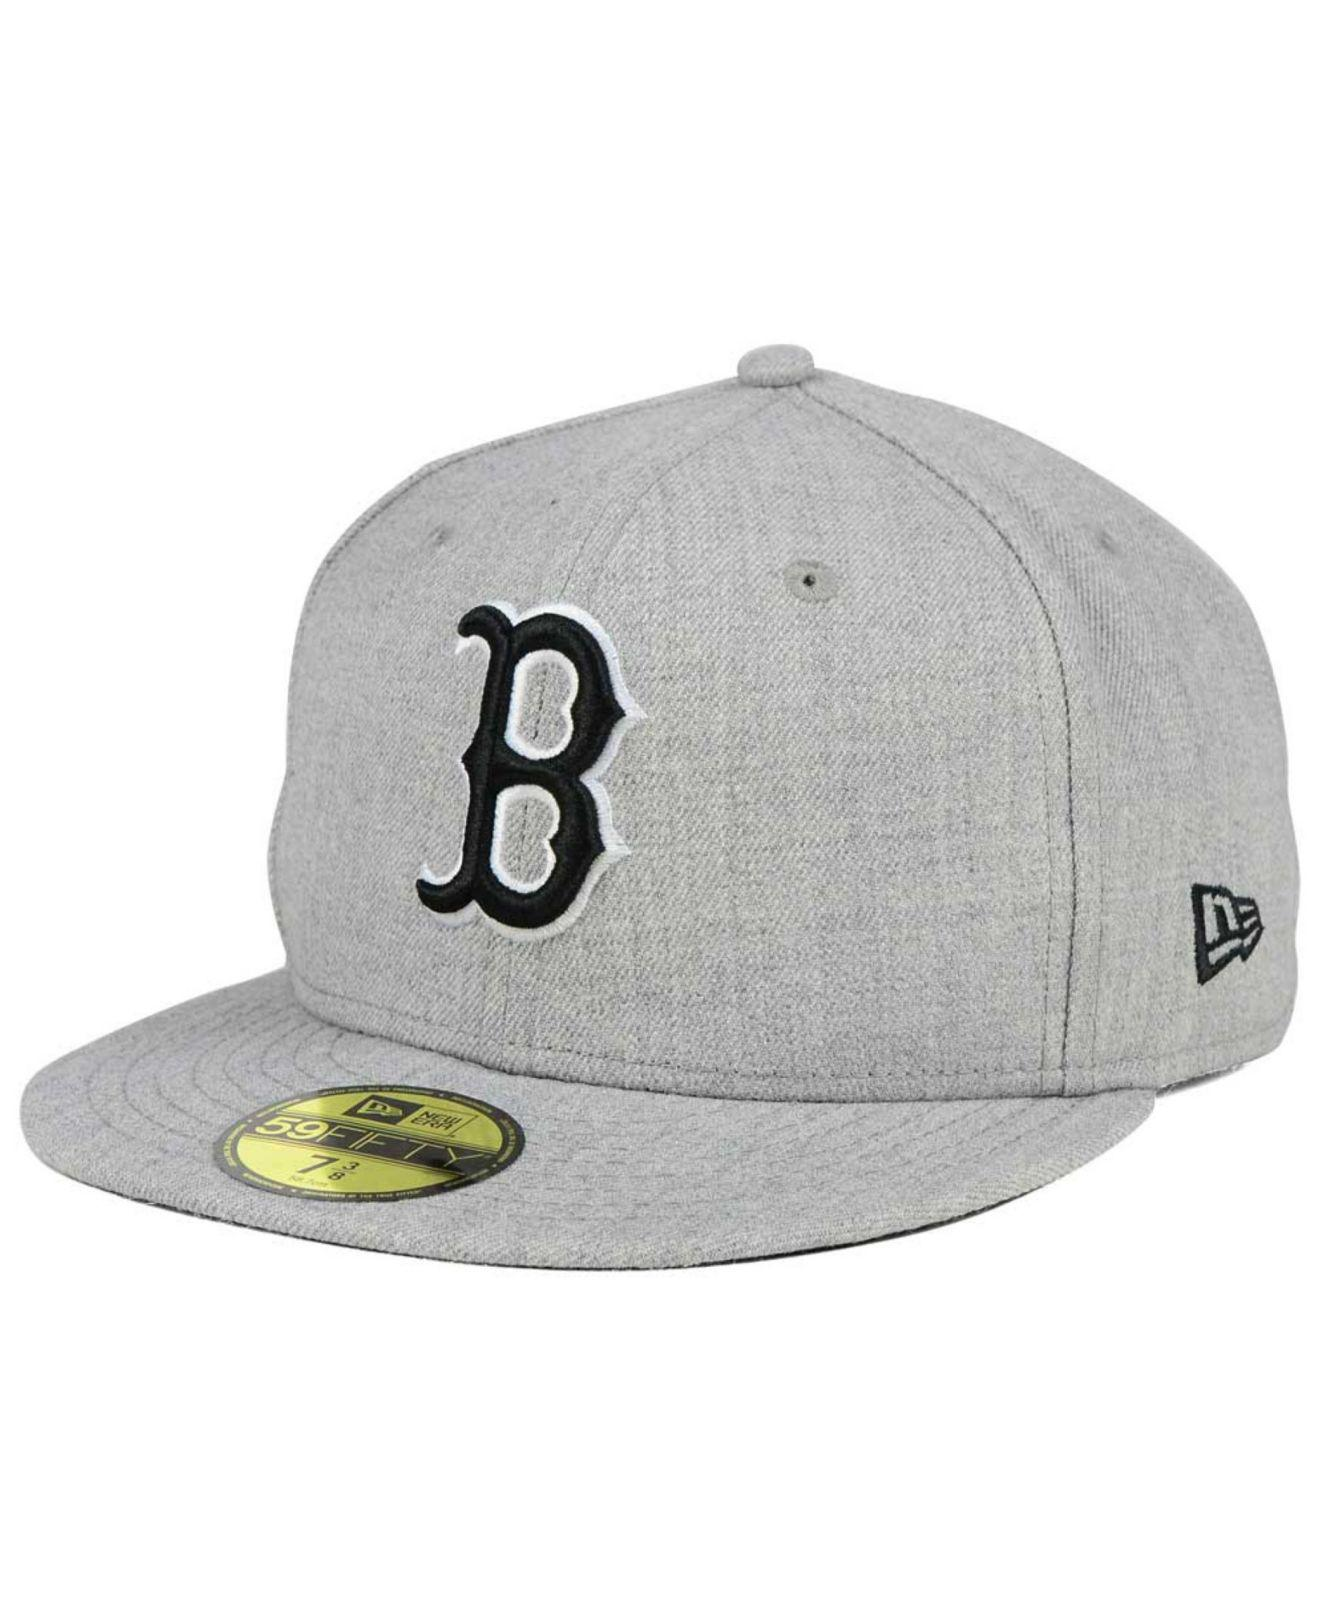 separation shoes 68042 12af1 ... canada ktz. mens gray boston red sox heather black white 59fifty cap  96b34 bdcc4